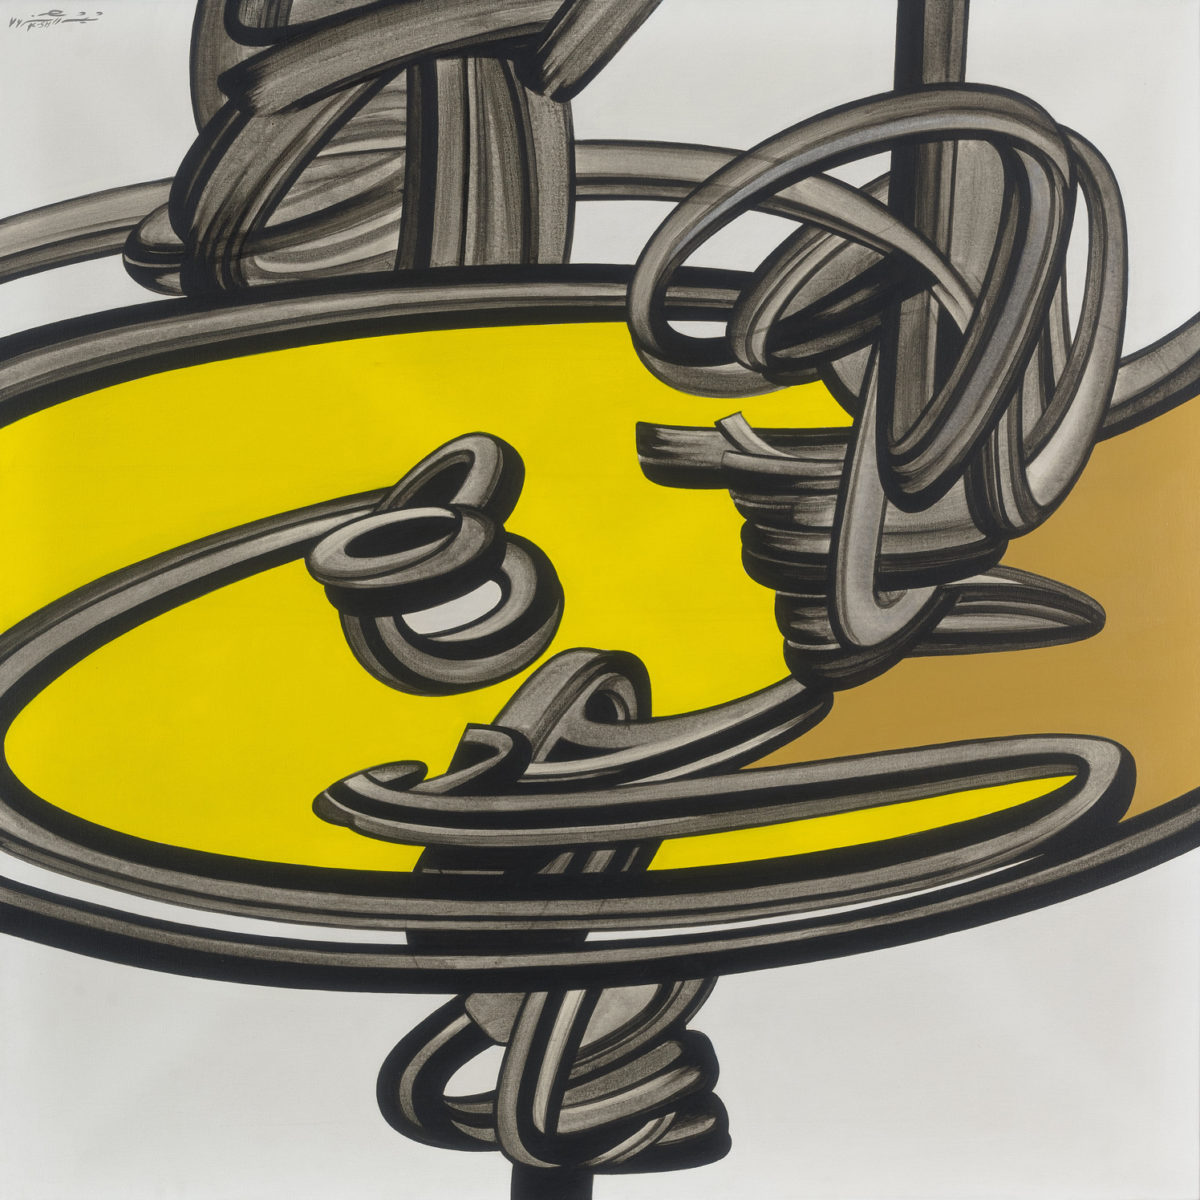 'Yellow and black abstract' by Kourosh Shishegaran.